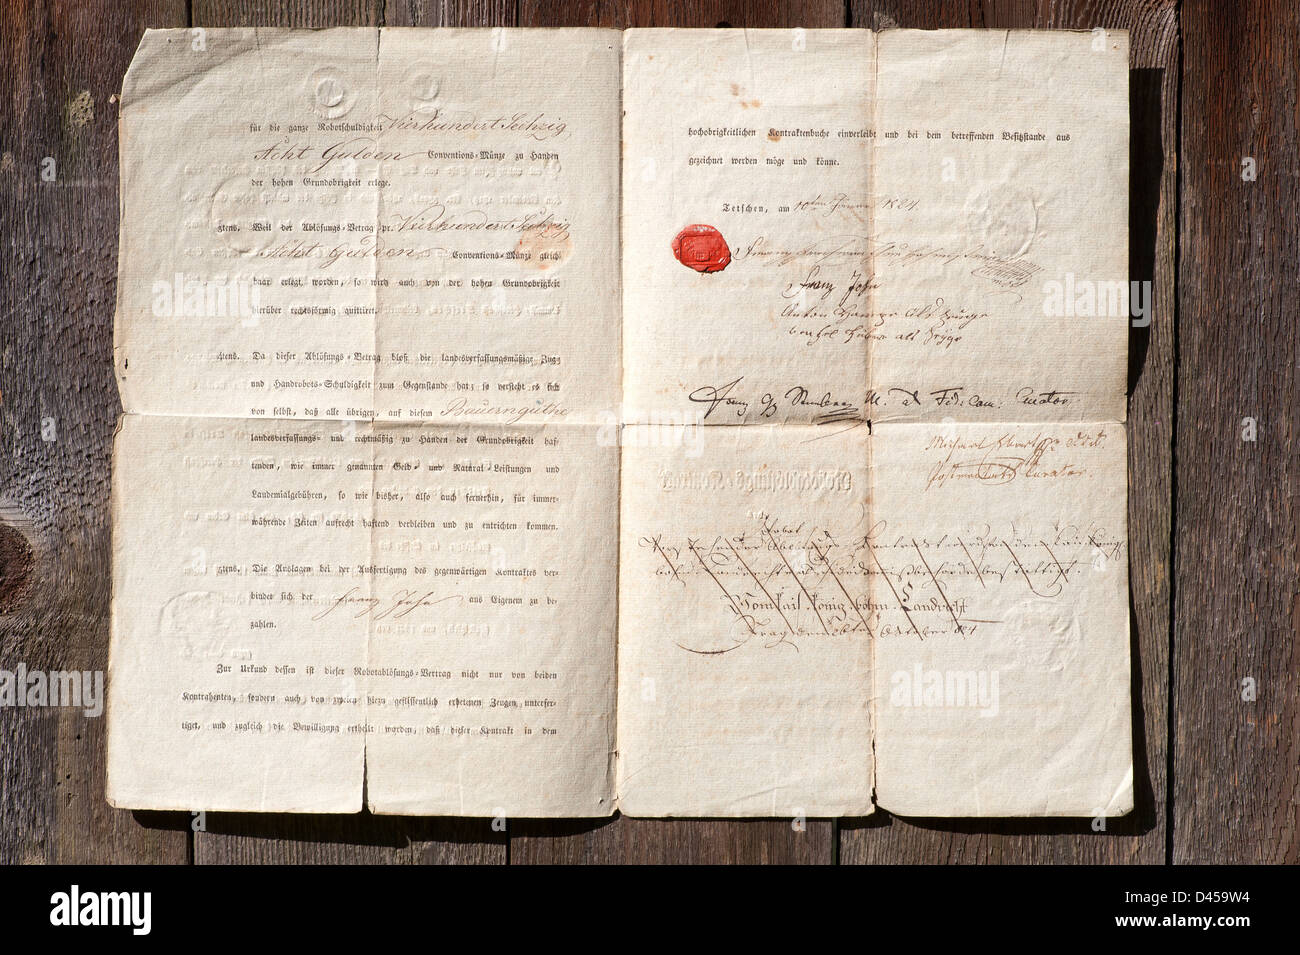 Old document - very old paper with hand writing and stamps - Stock Image